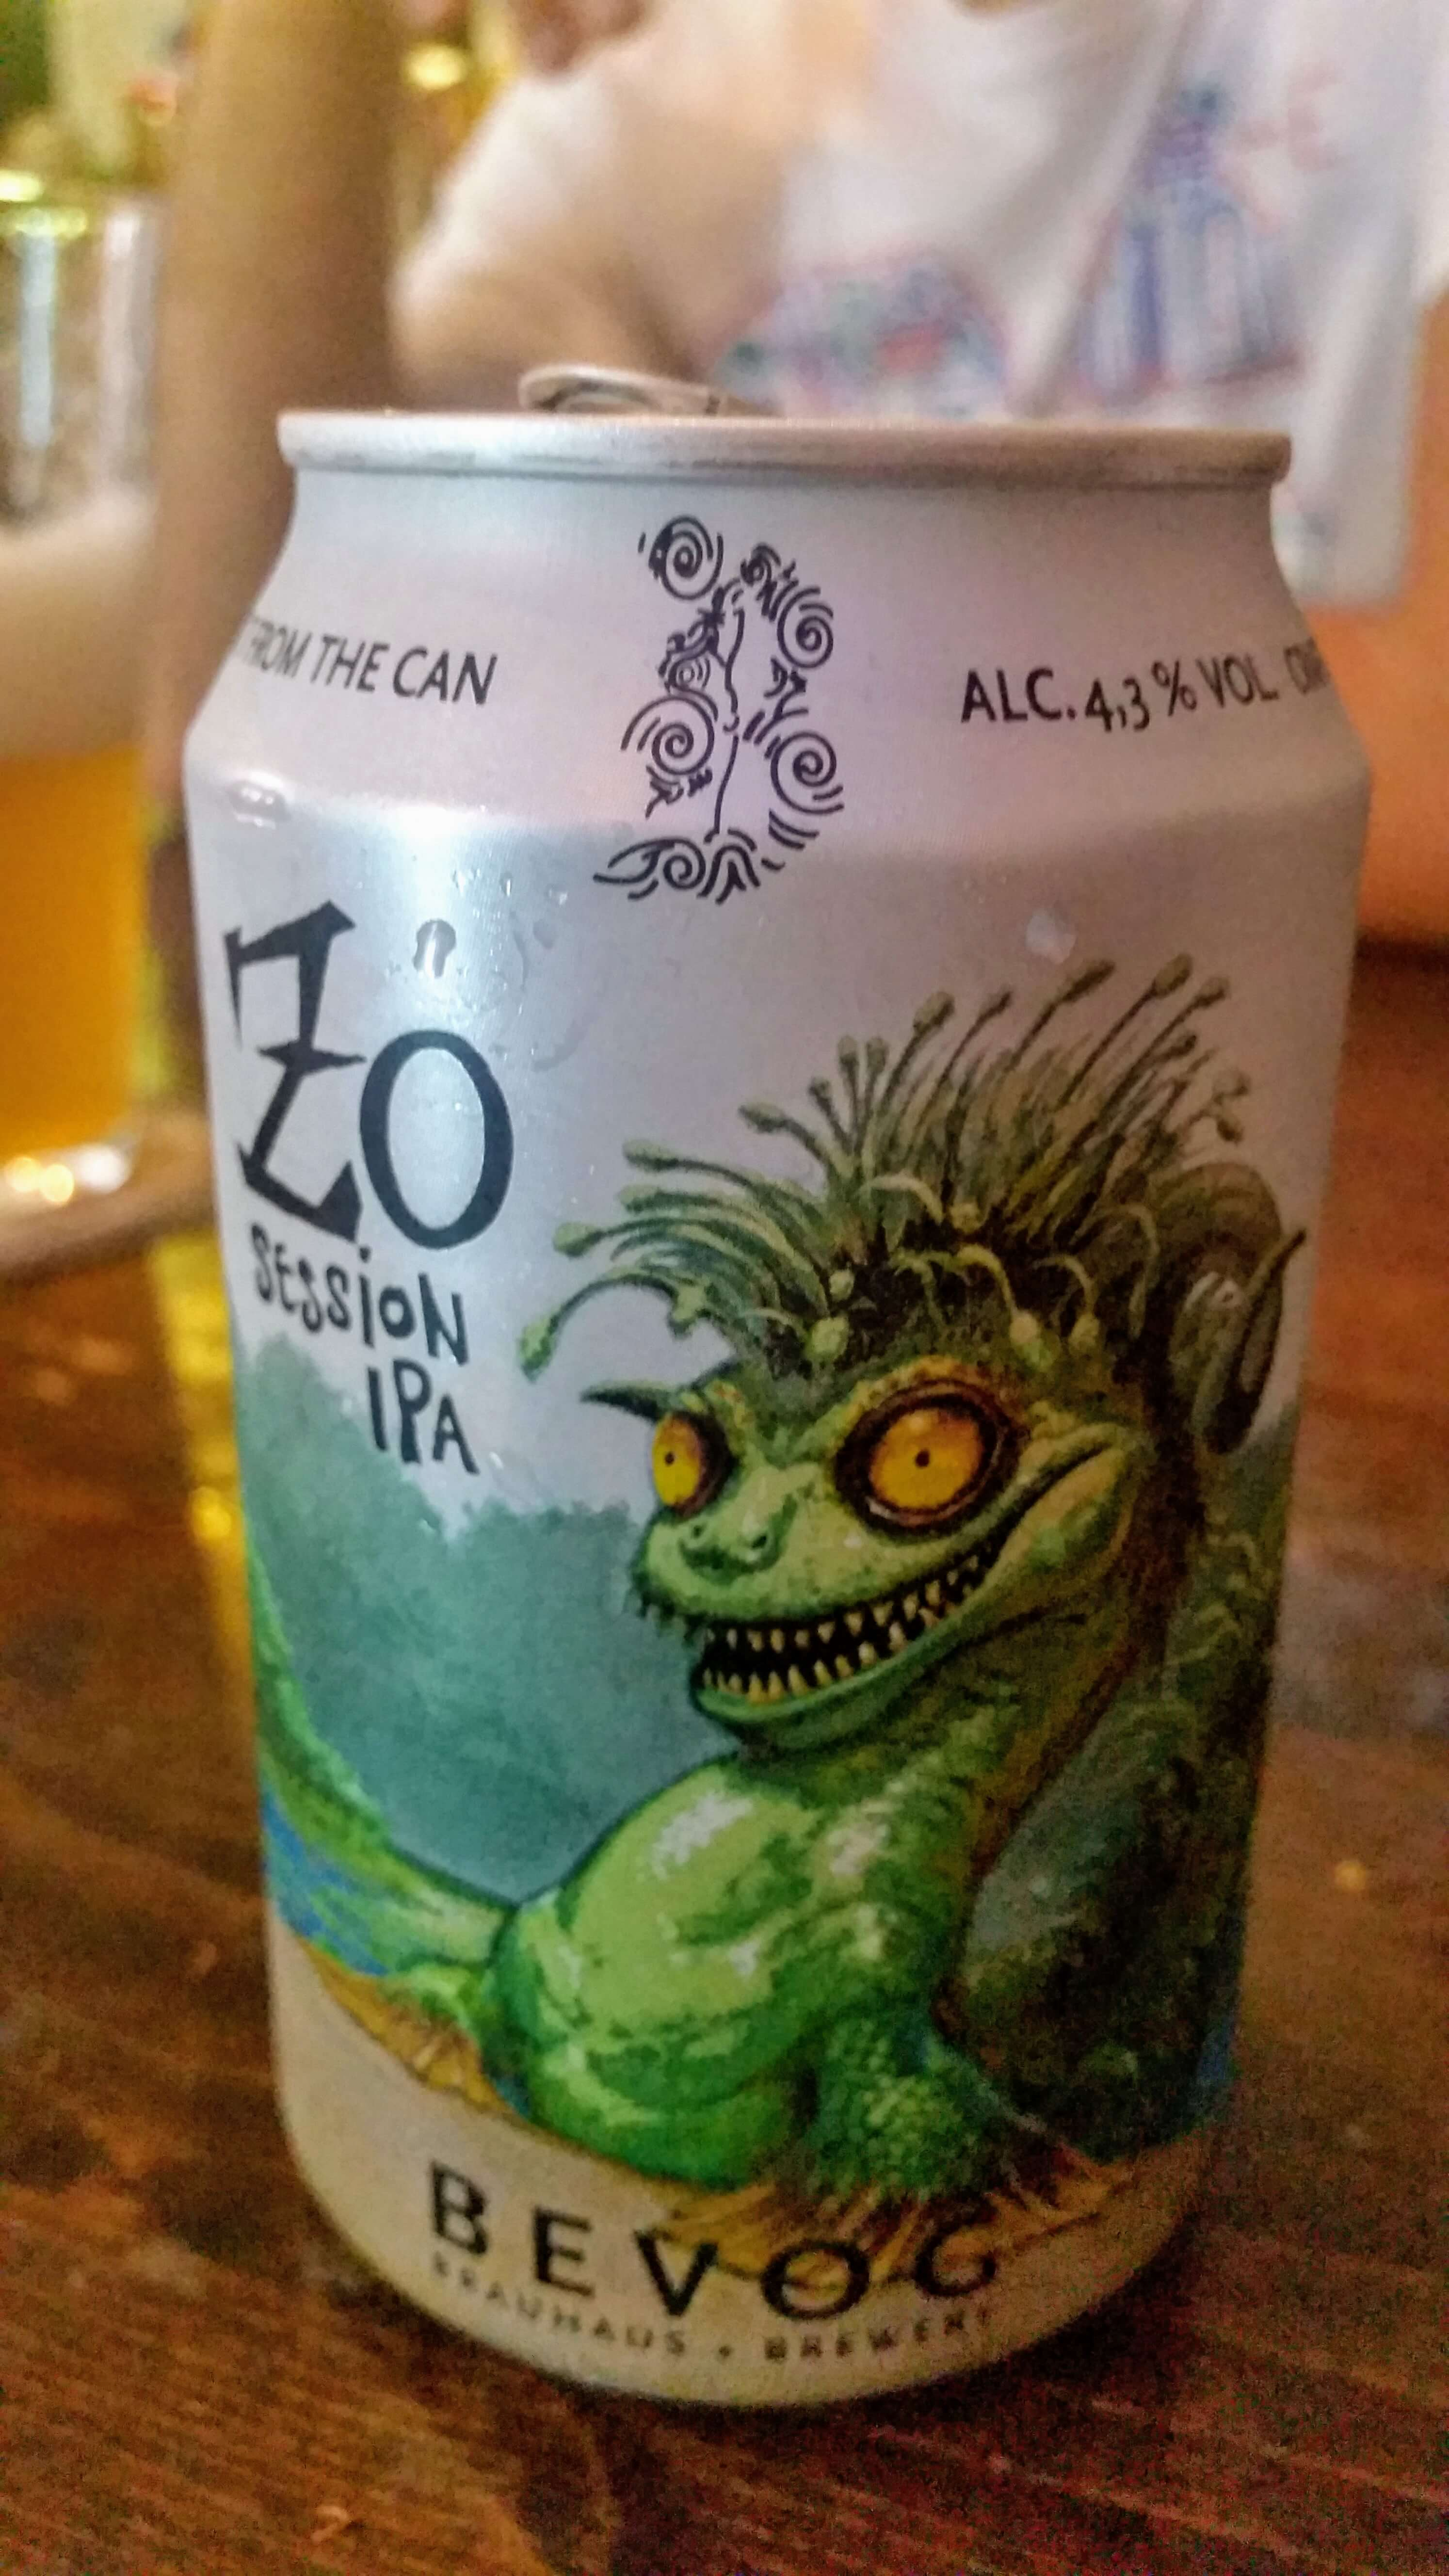 Bevog Zo Session IPA